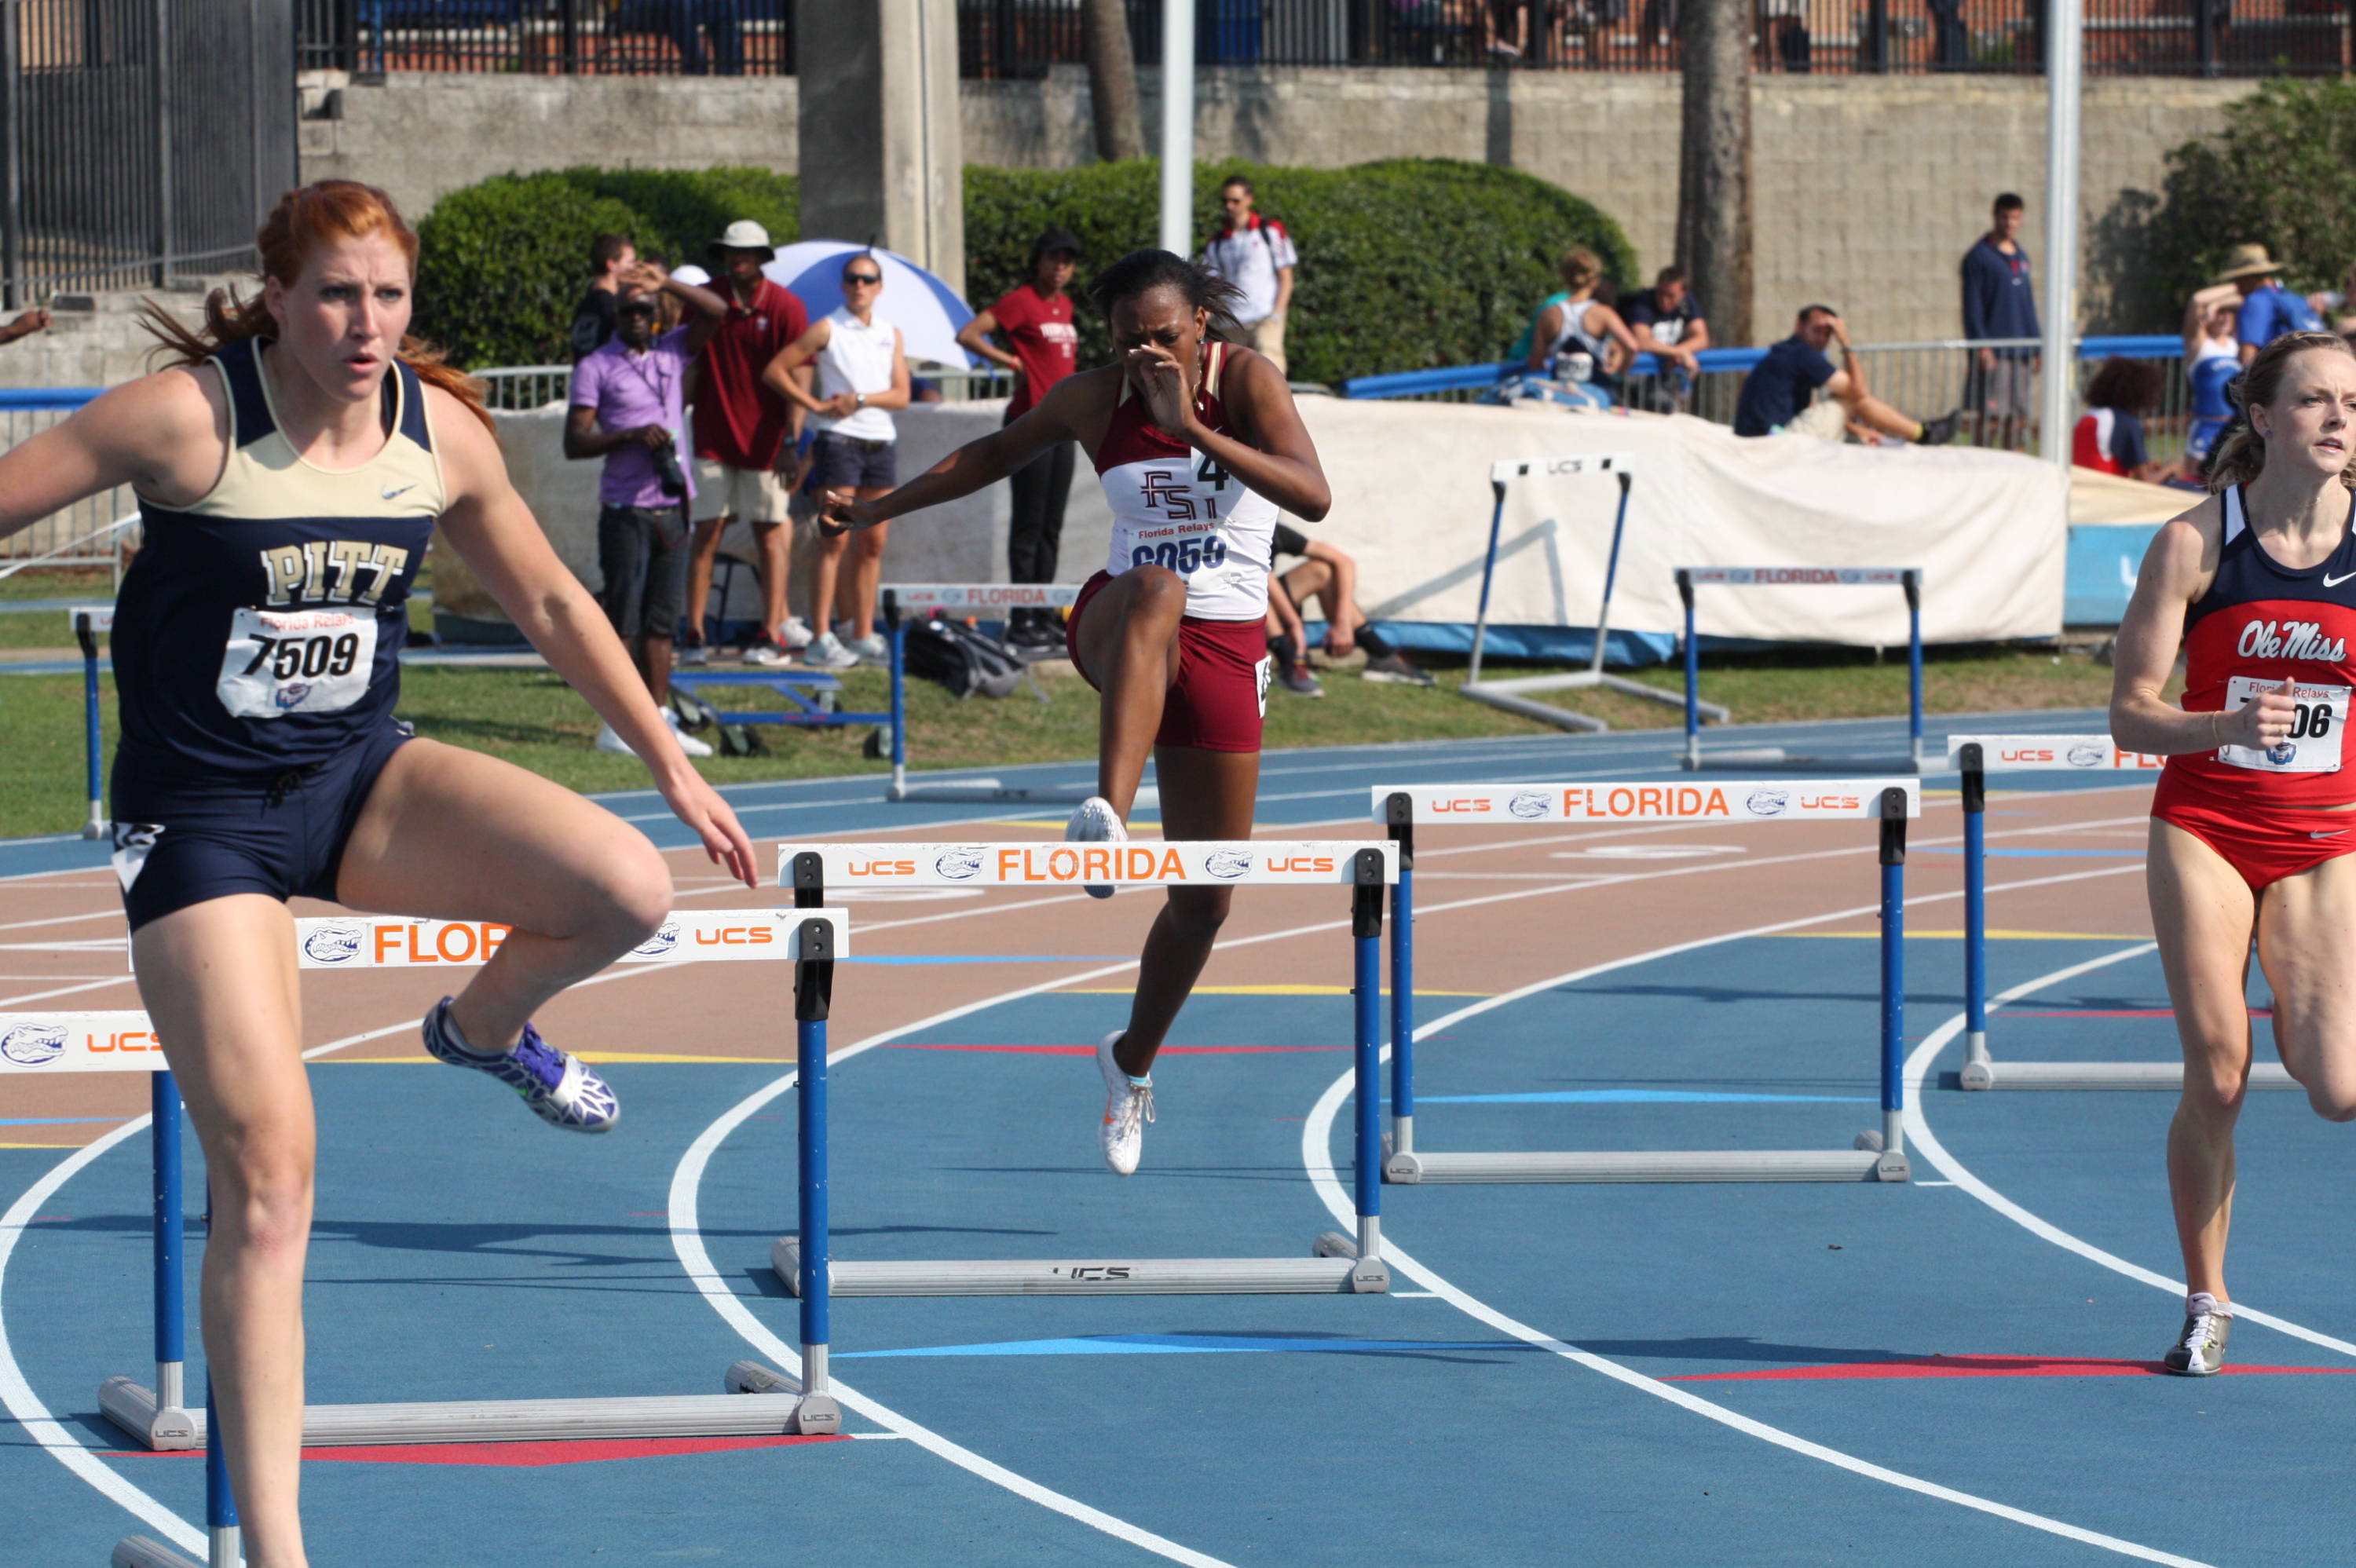 Marsha Ariol works her way into the turn in the 400-meter hurdles.